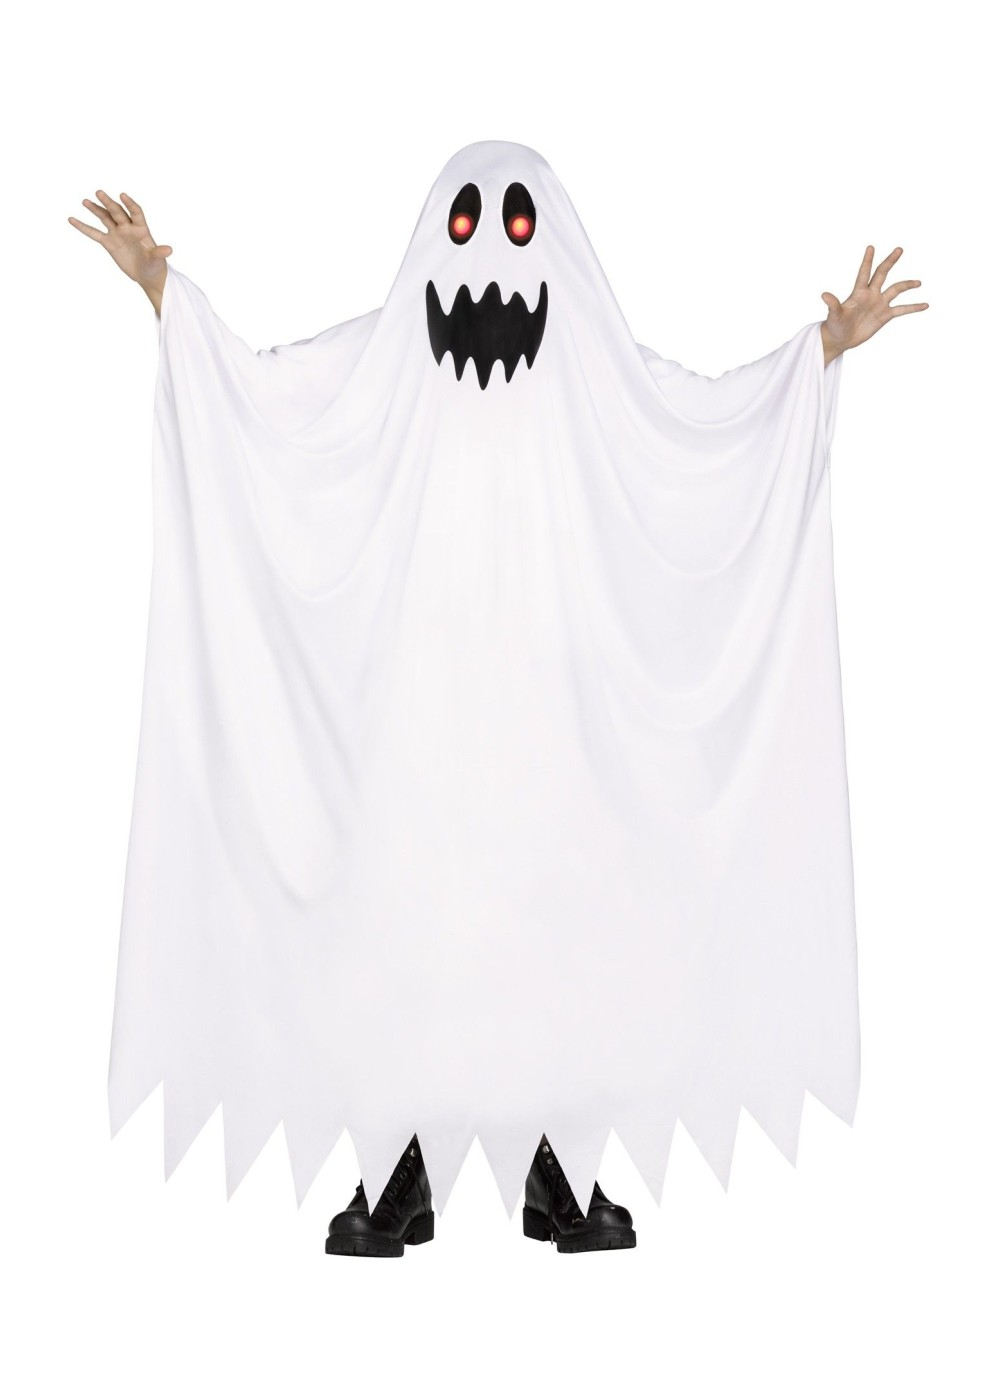 Fade In And Out Ghost Boys Costume